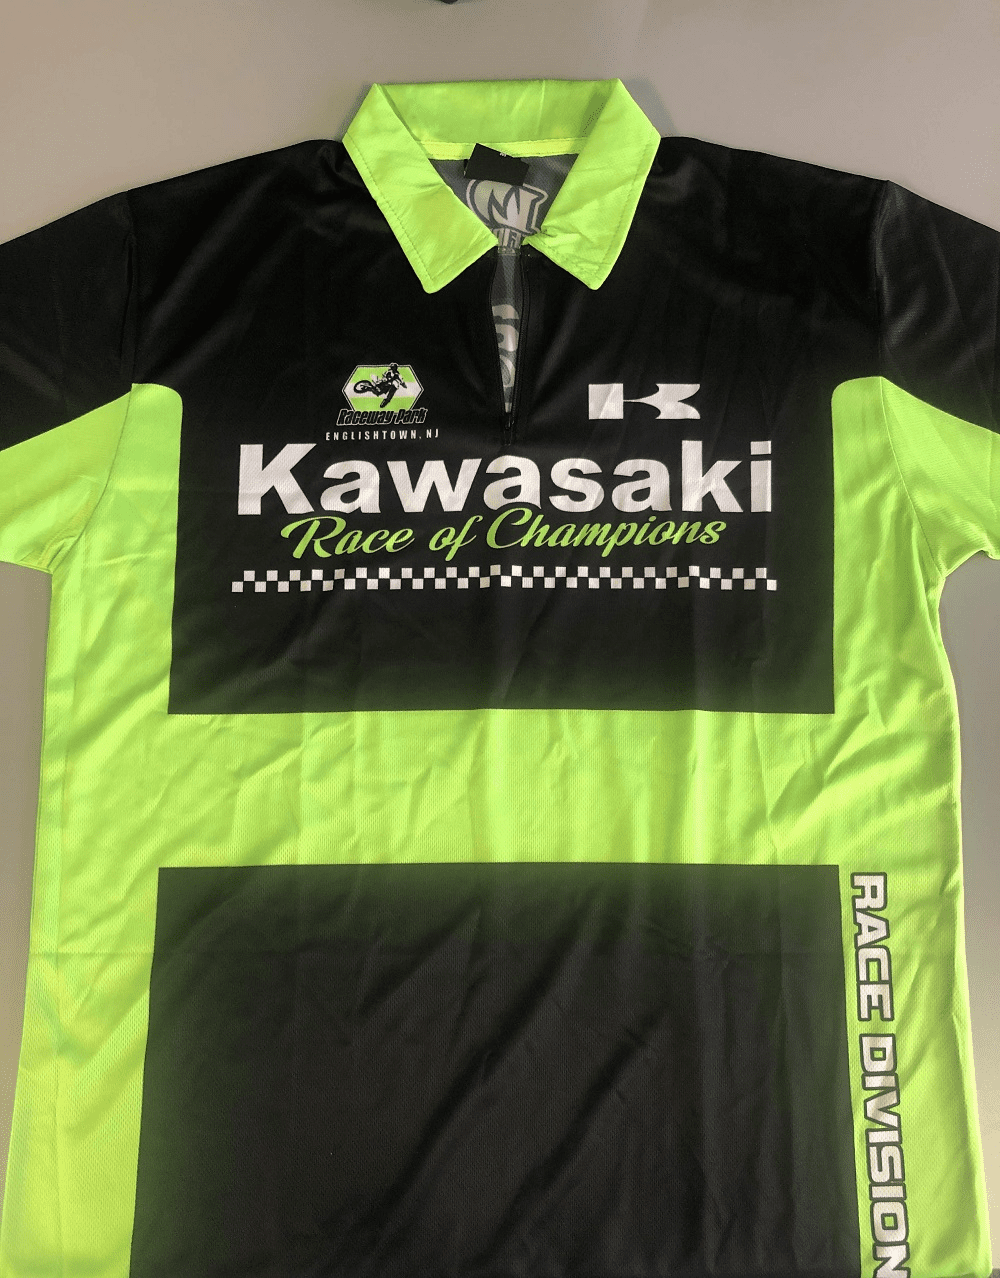 KAWASAKI RACE OF CHAMPIONS CREW SHIRT